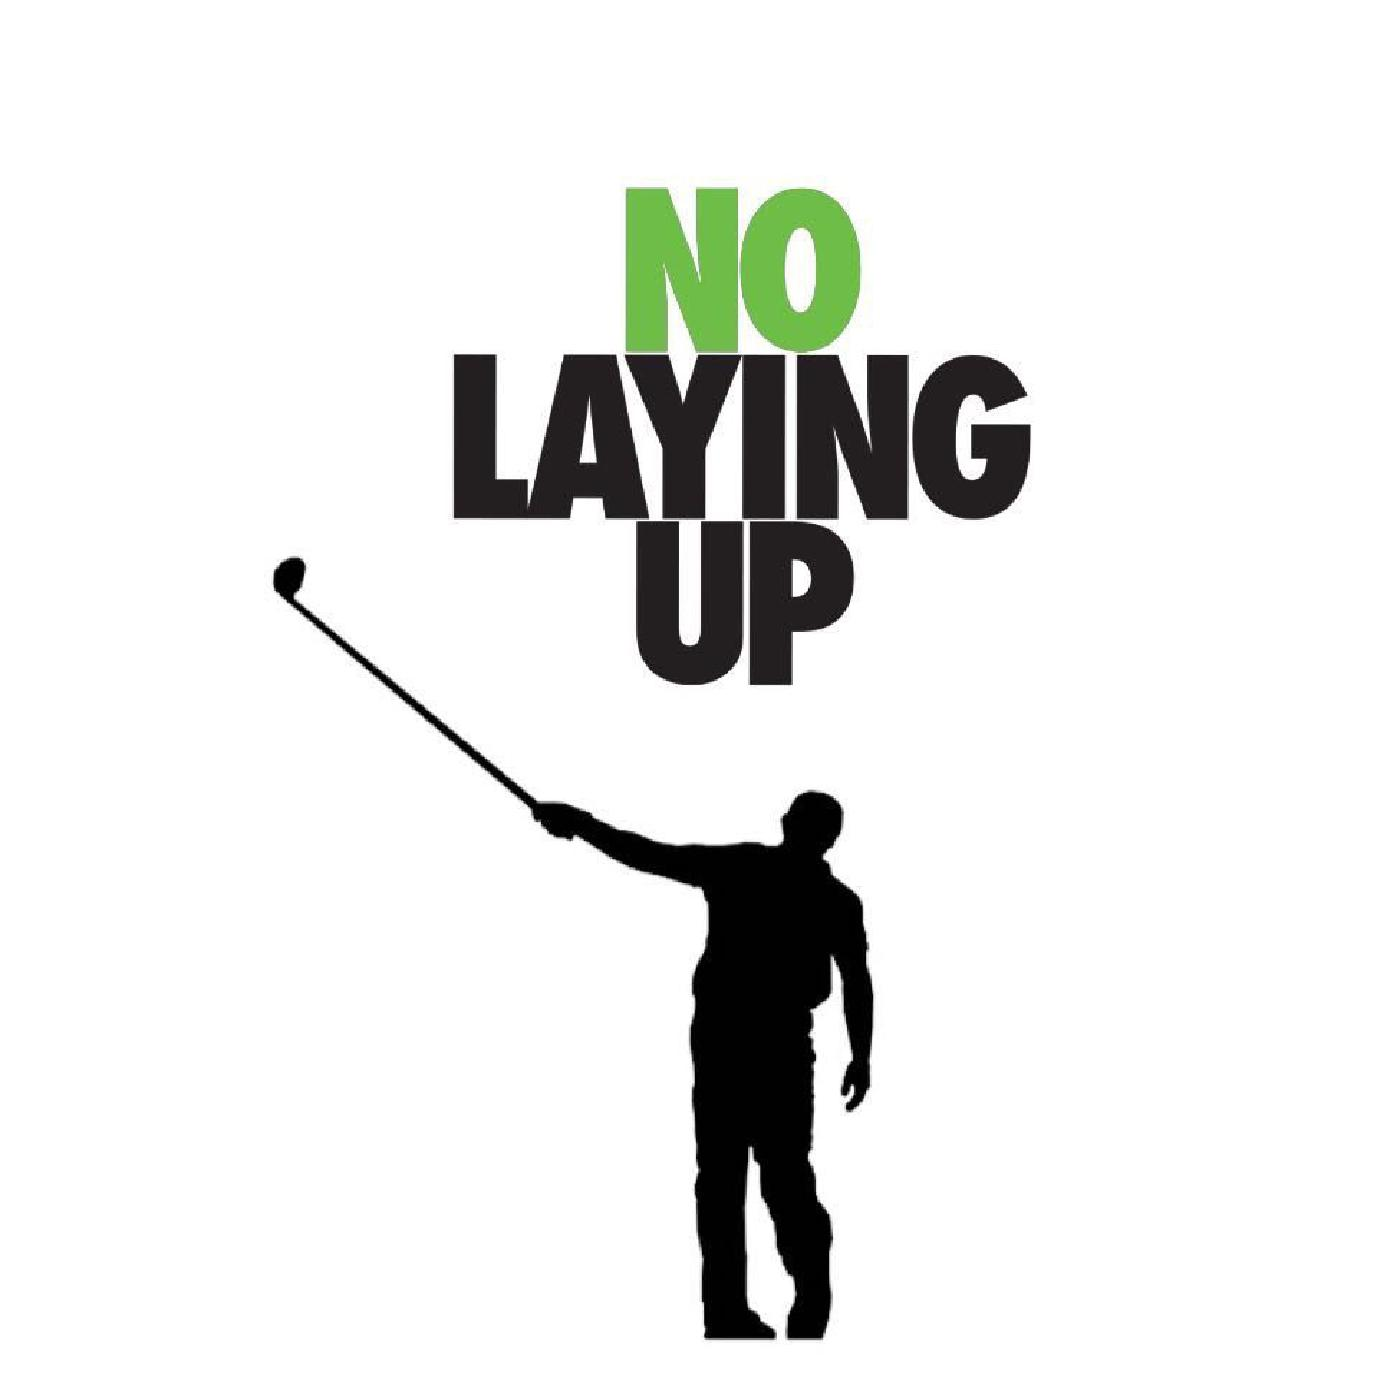 NLU Podcast, Episode 331: Tom Watson, Padraig Harrington, and Iain Carter (The Open Championship for the Ages)